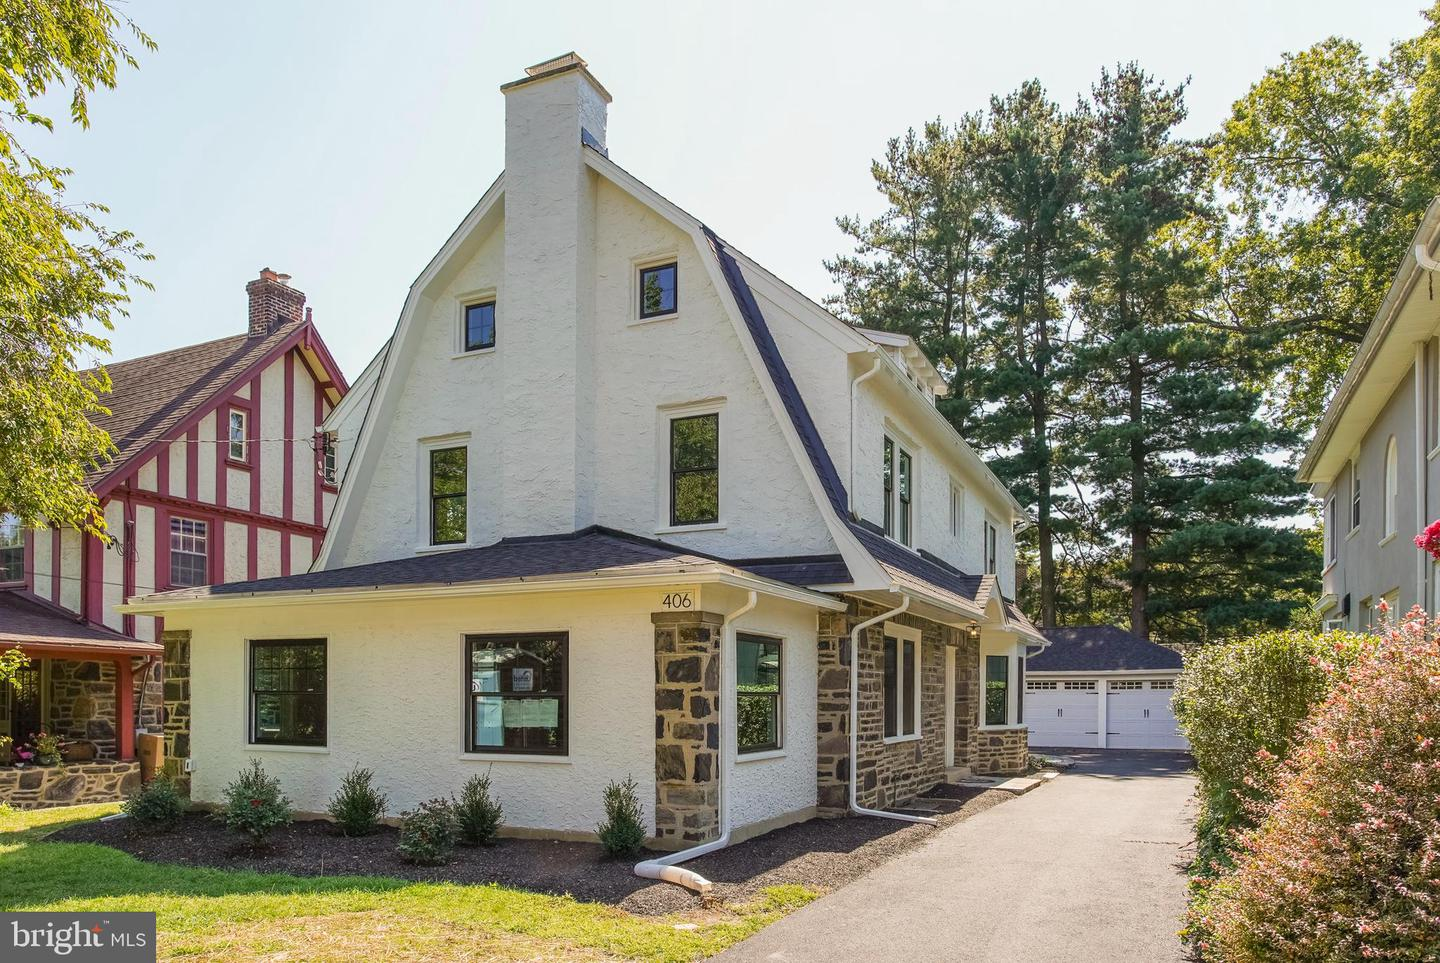 406 Haverford Avenue Narberth, PA 19072